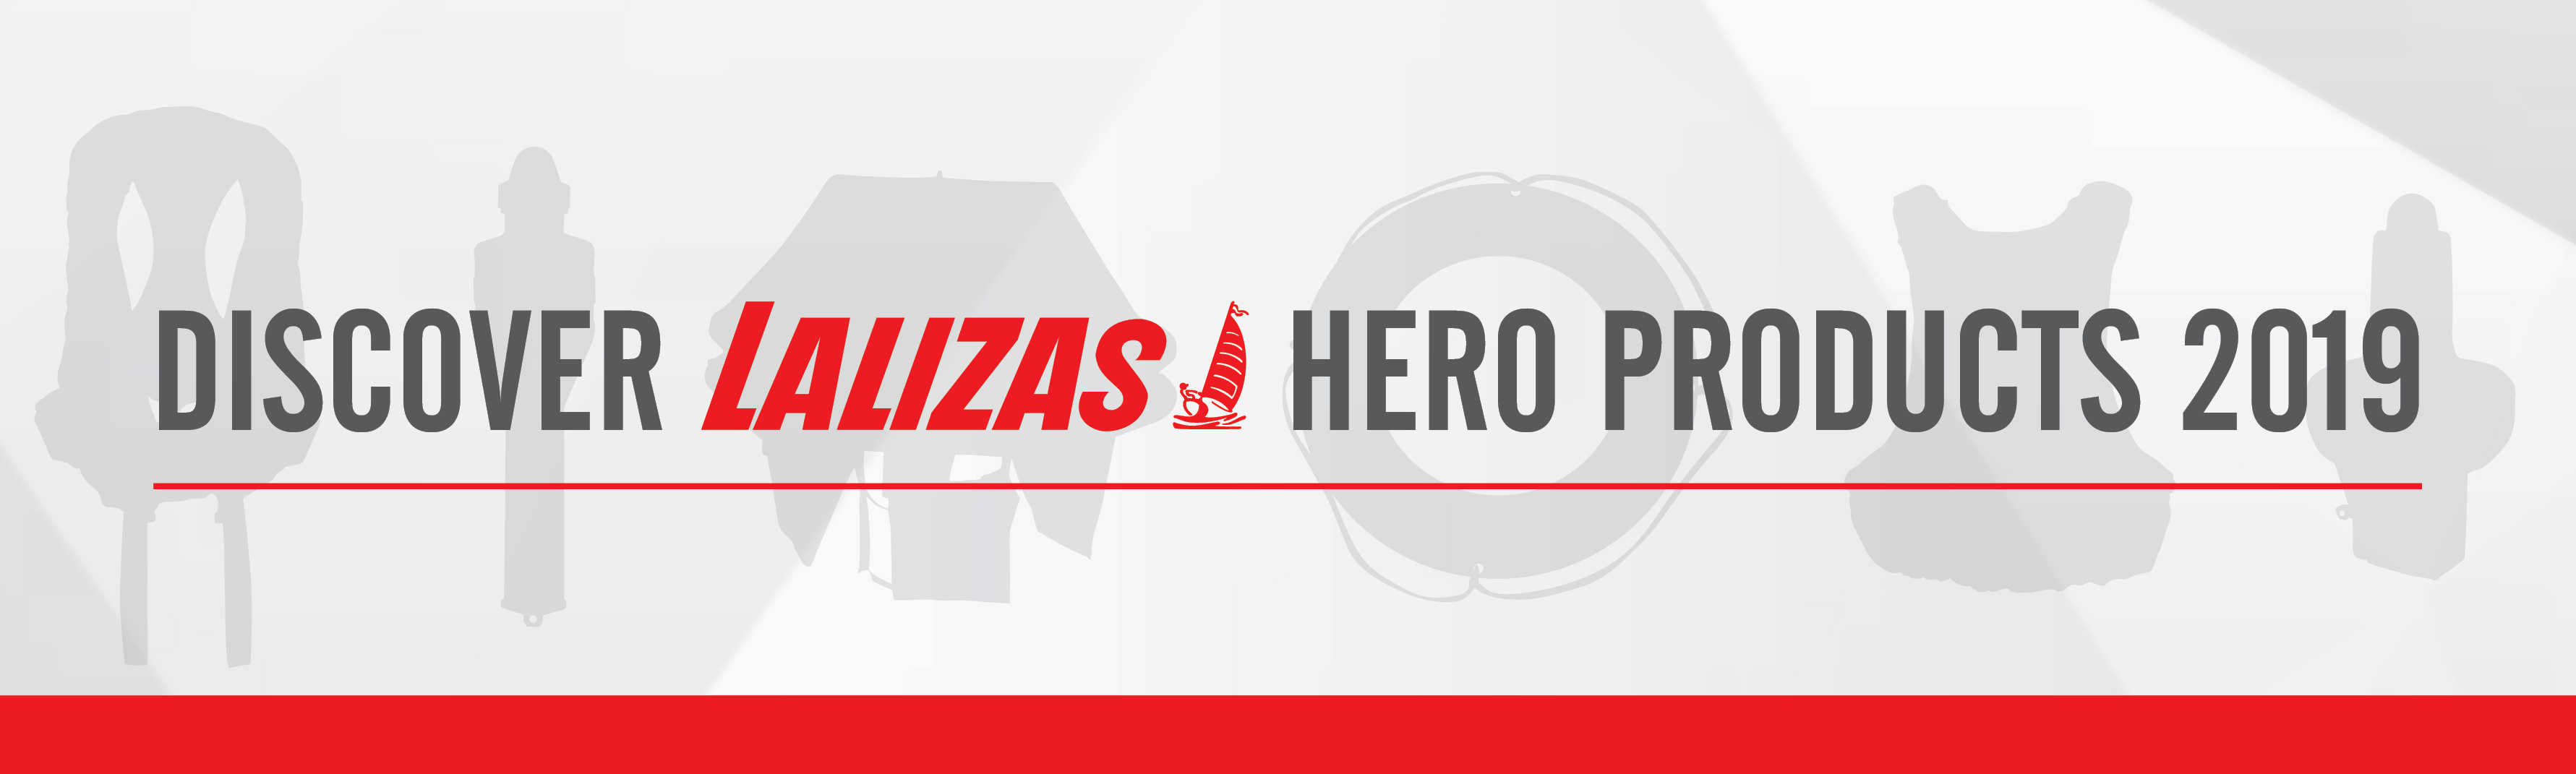 It's time to discover the LALIZAS Hero Products 2019!